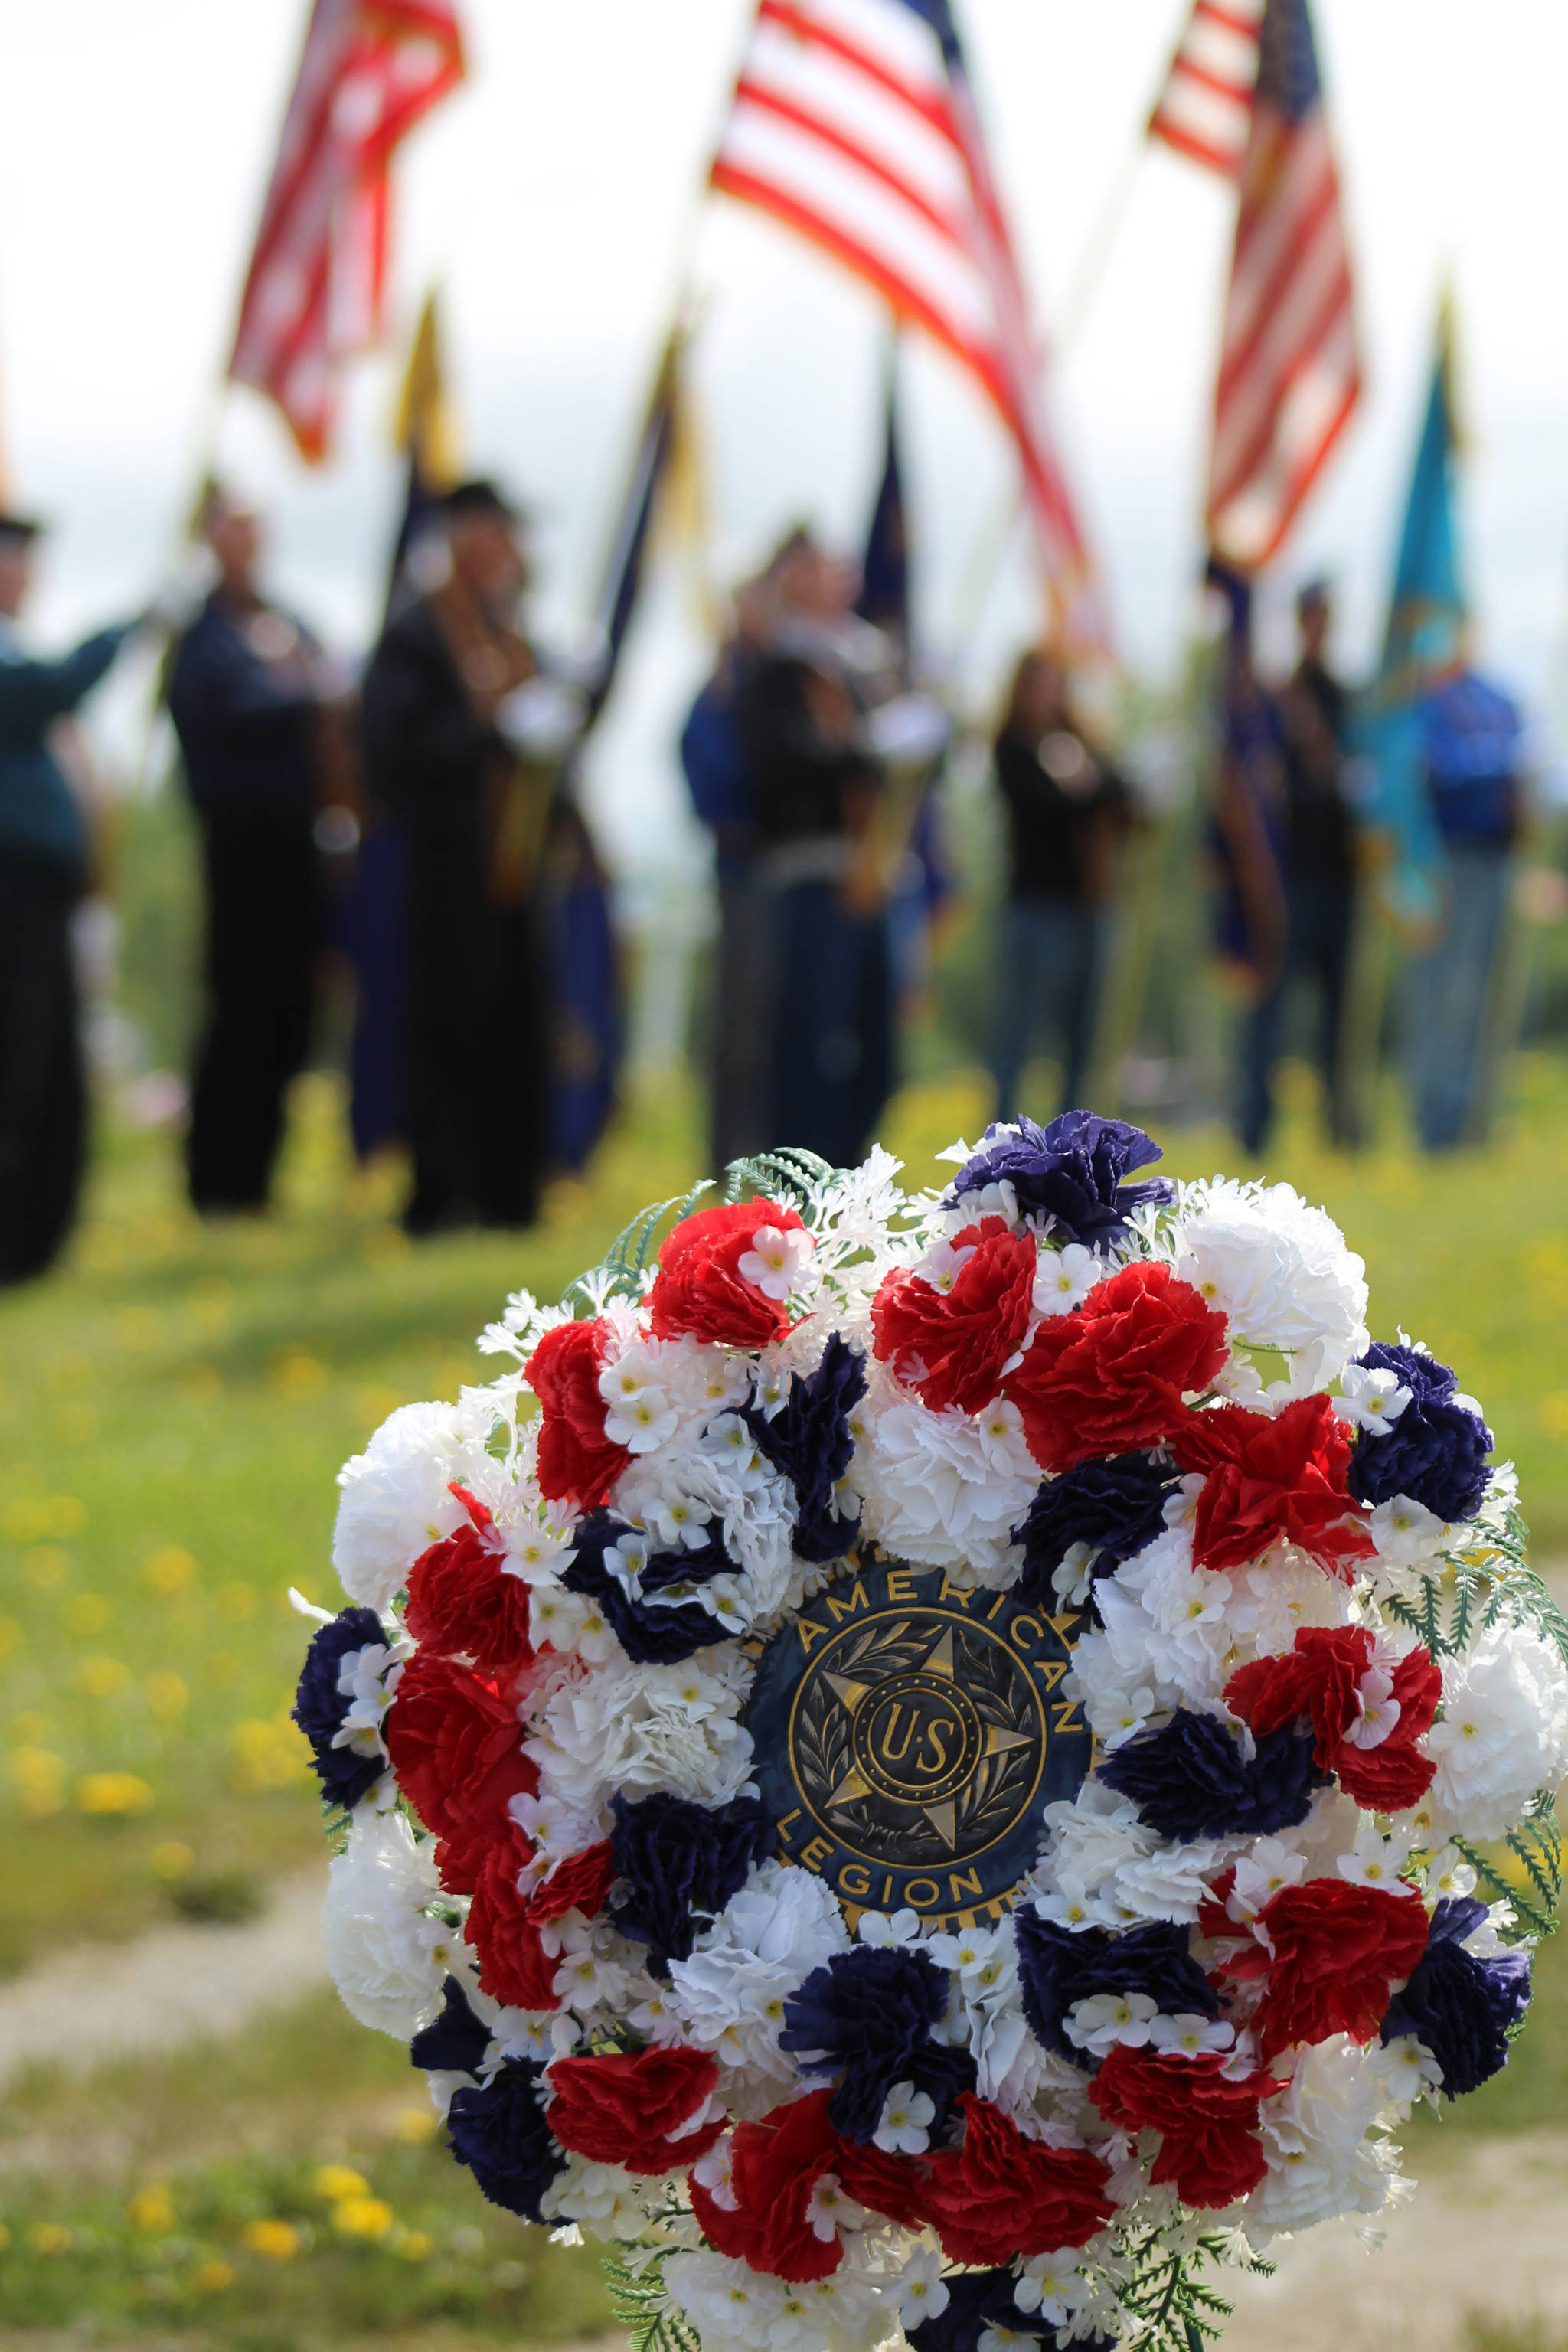 An American Legion flower wreath decorated the Ninilchik Cemetery at a 2106 Memorial Day service to honor those fallen in battle. (Homer News file photo)